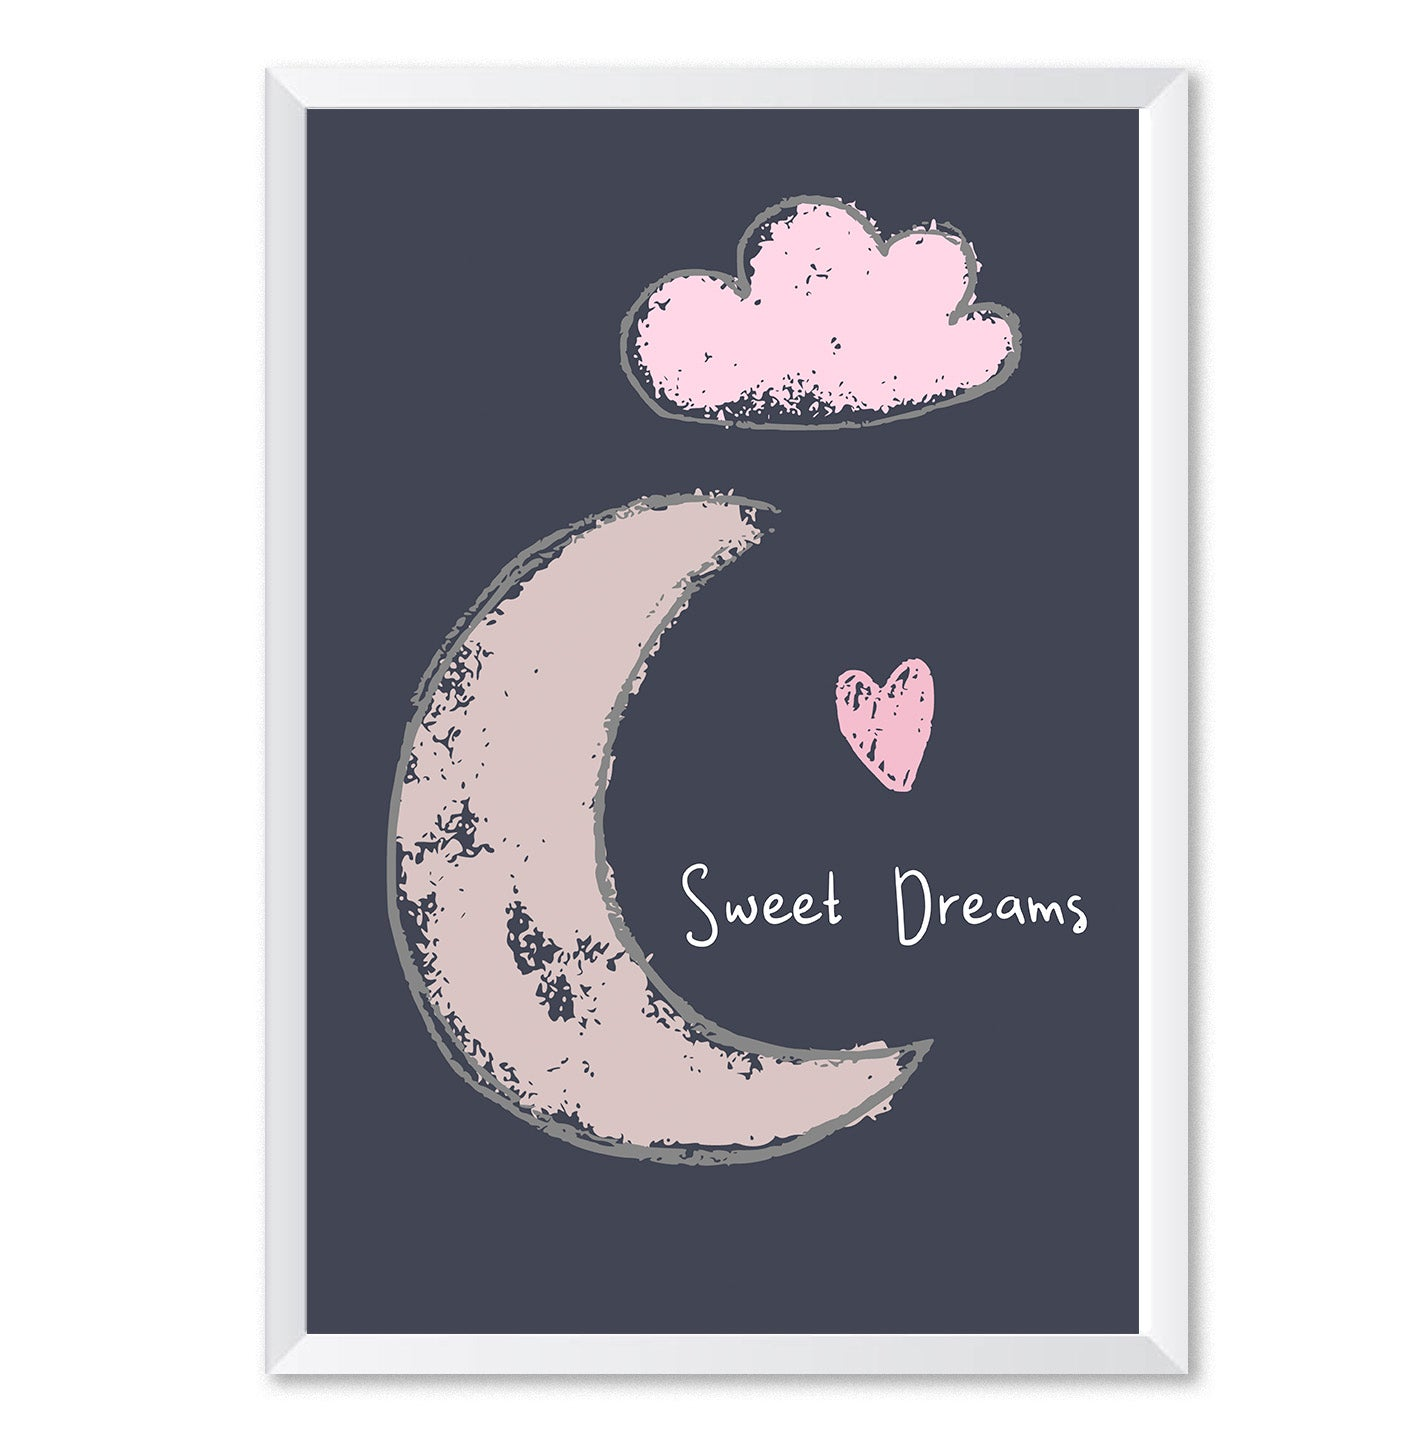 Sweet Dreams Moon Poster Print-Print-Mode Prints